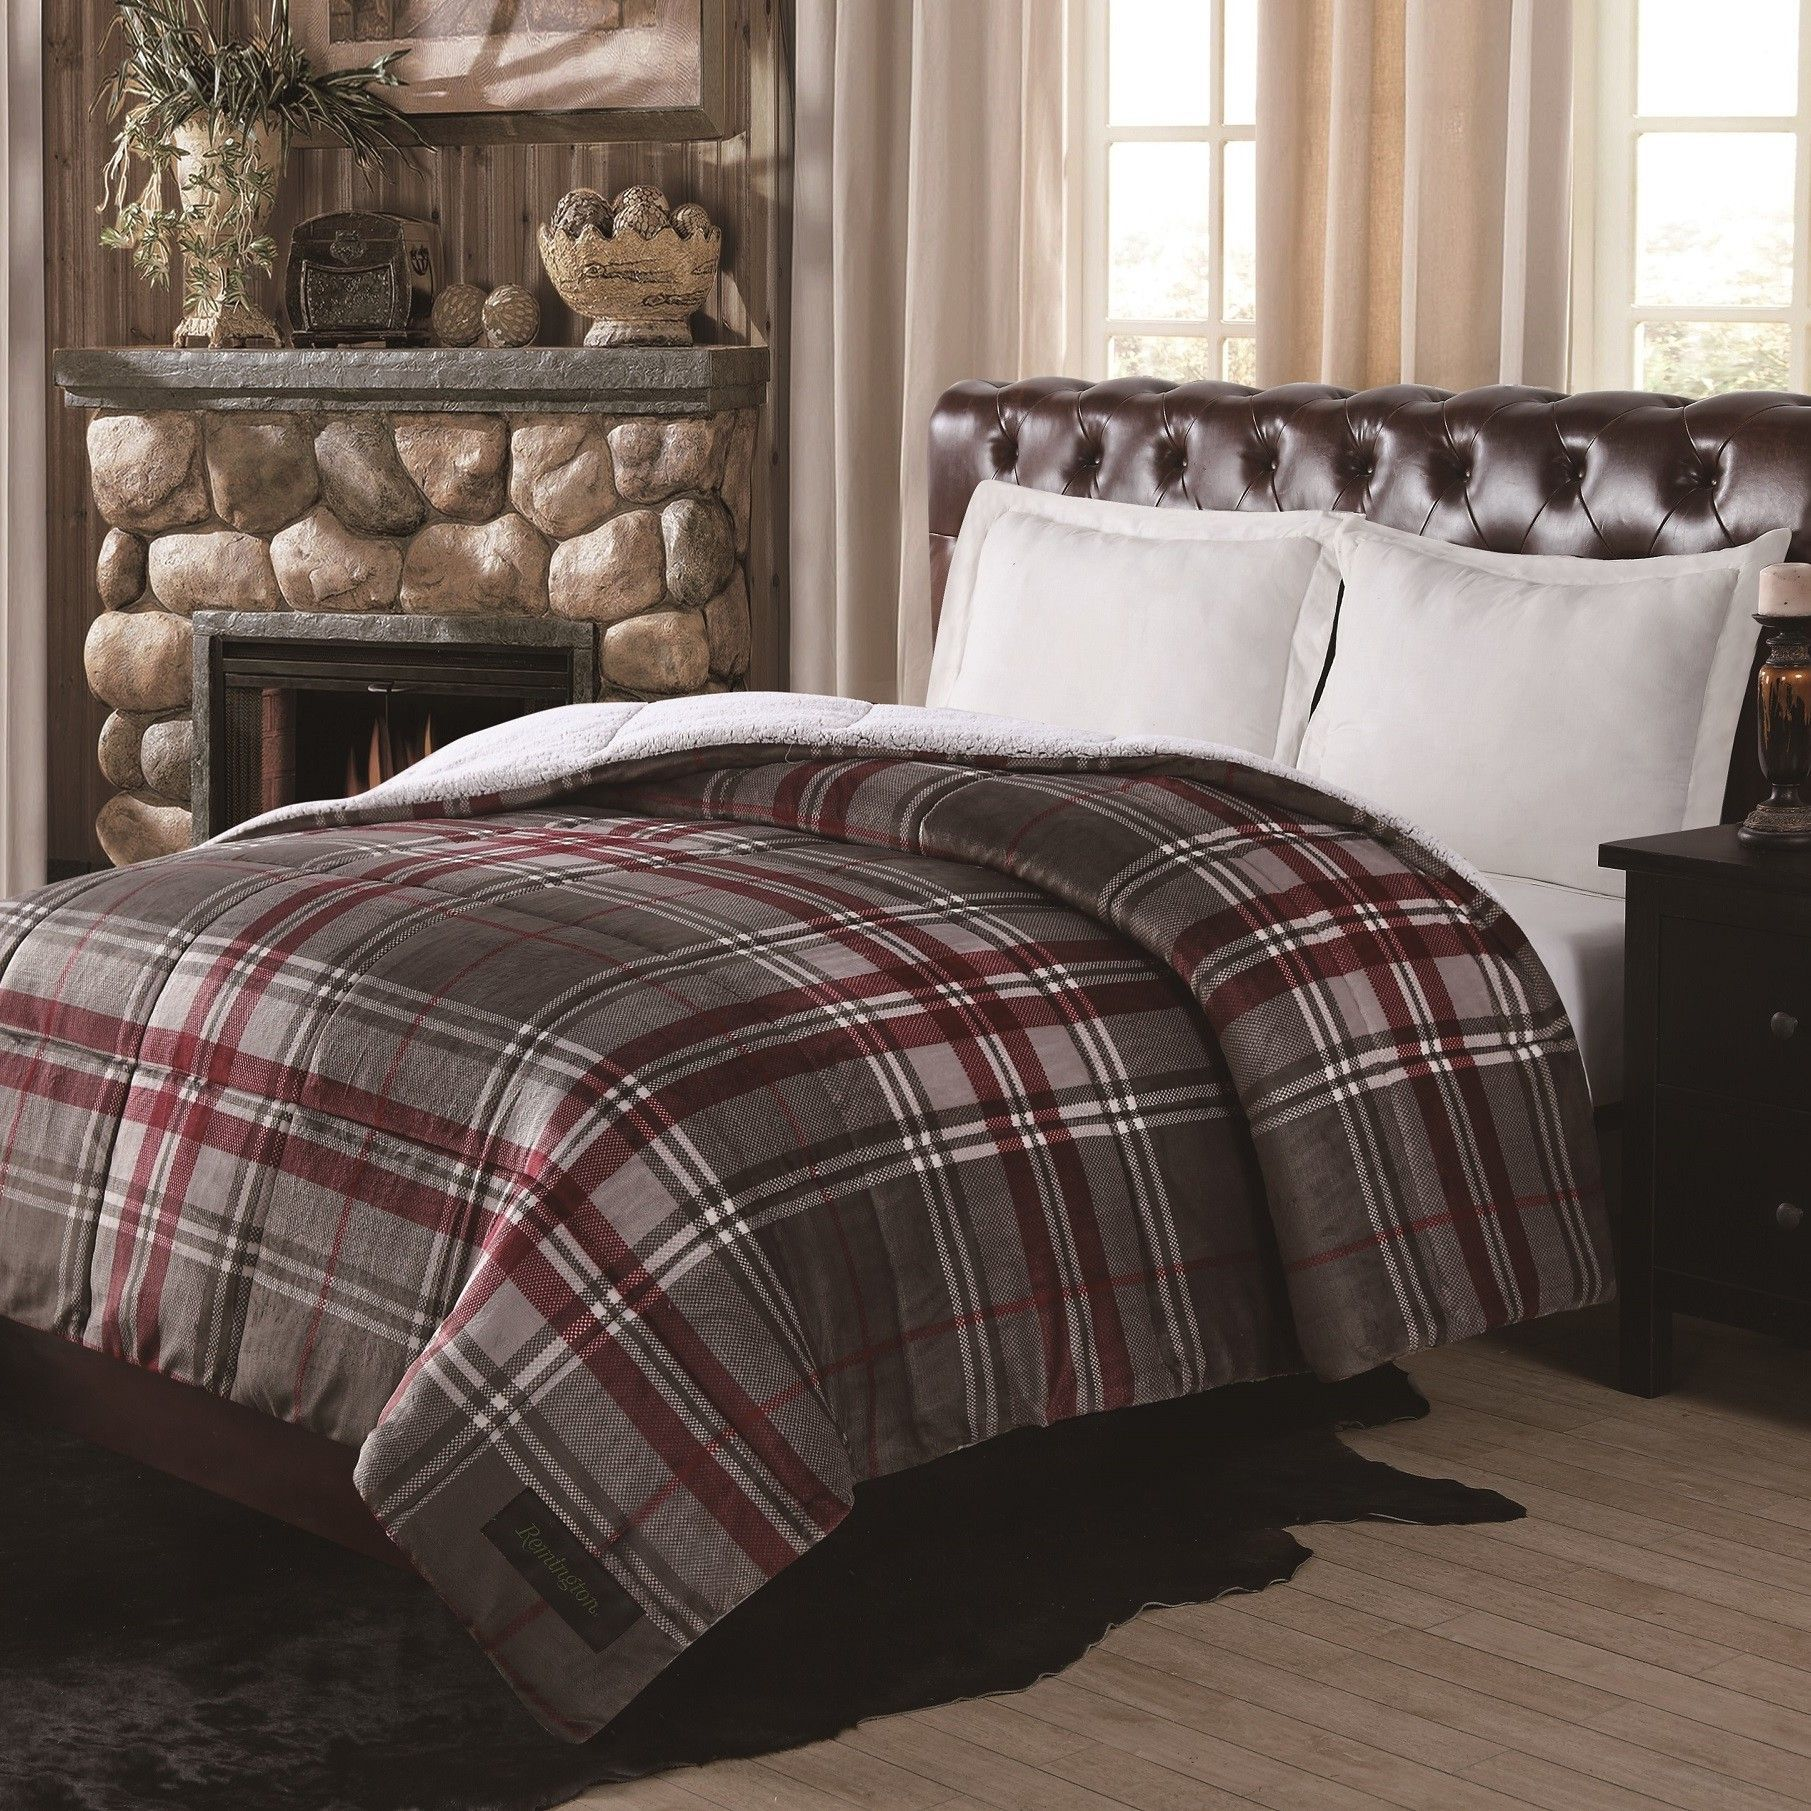 nafis ideas check of buffalo home forter comforter plaid design cuddl sheet cuddle duds set flannel